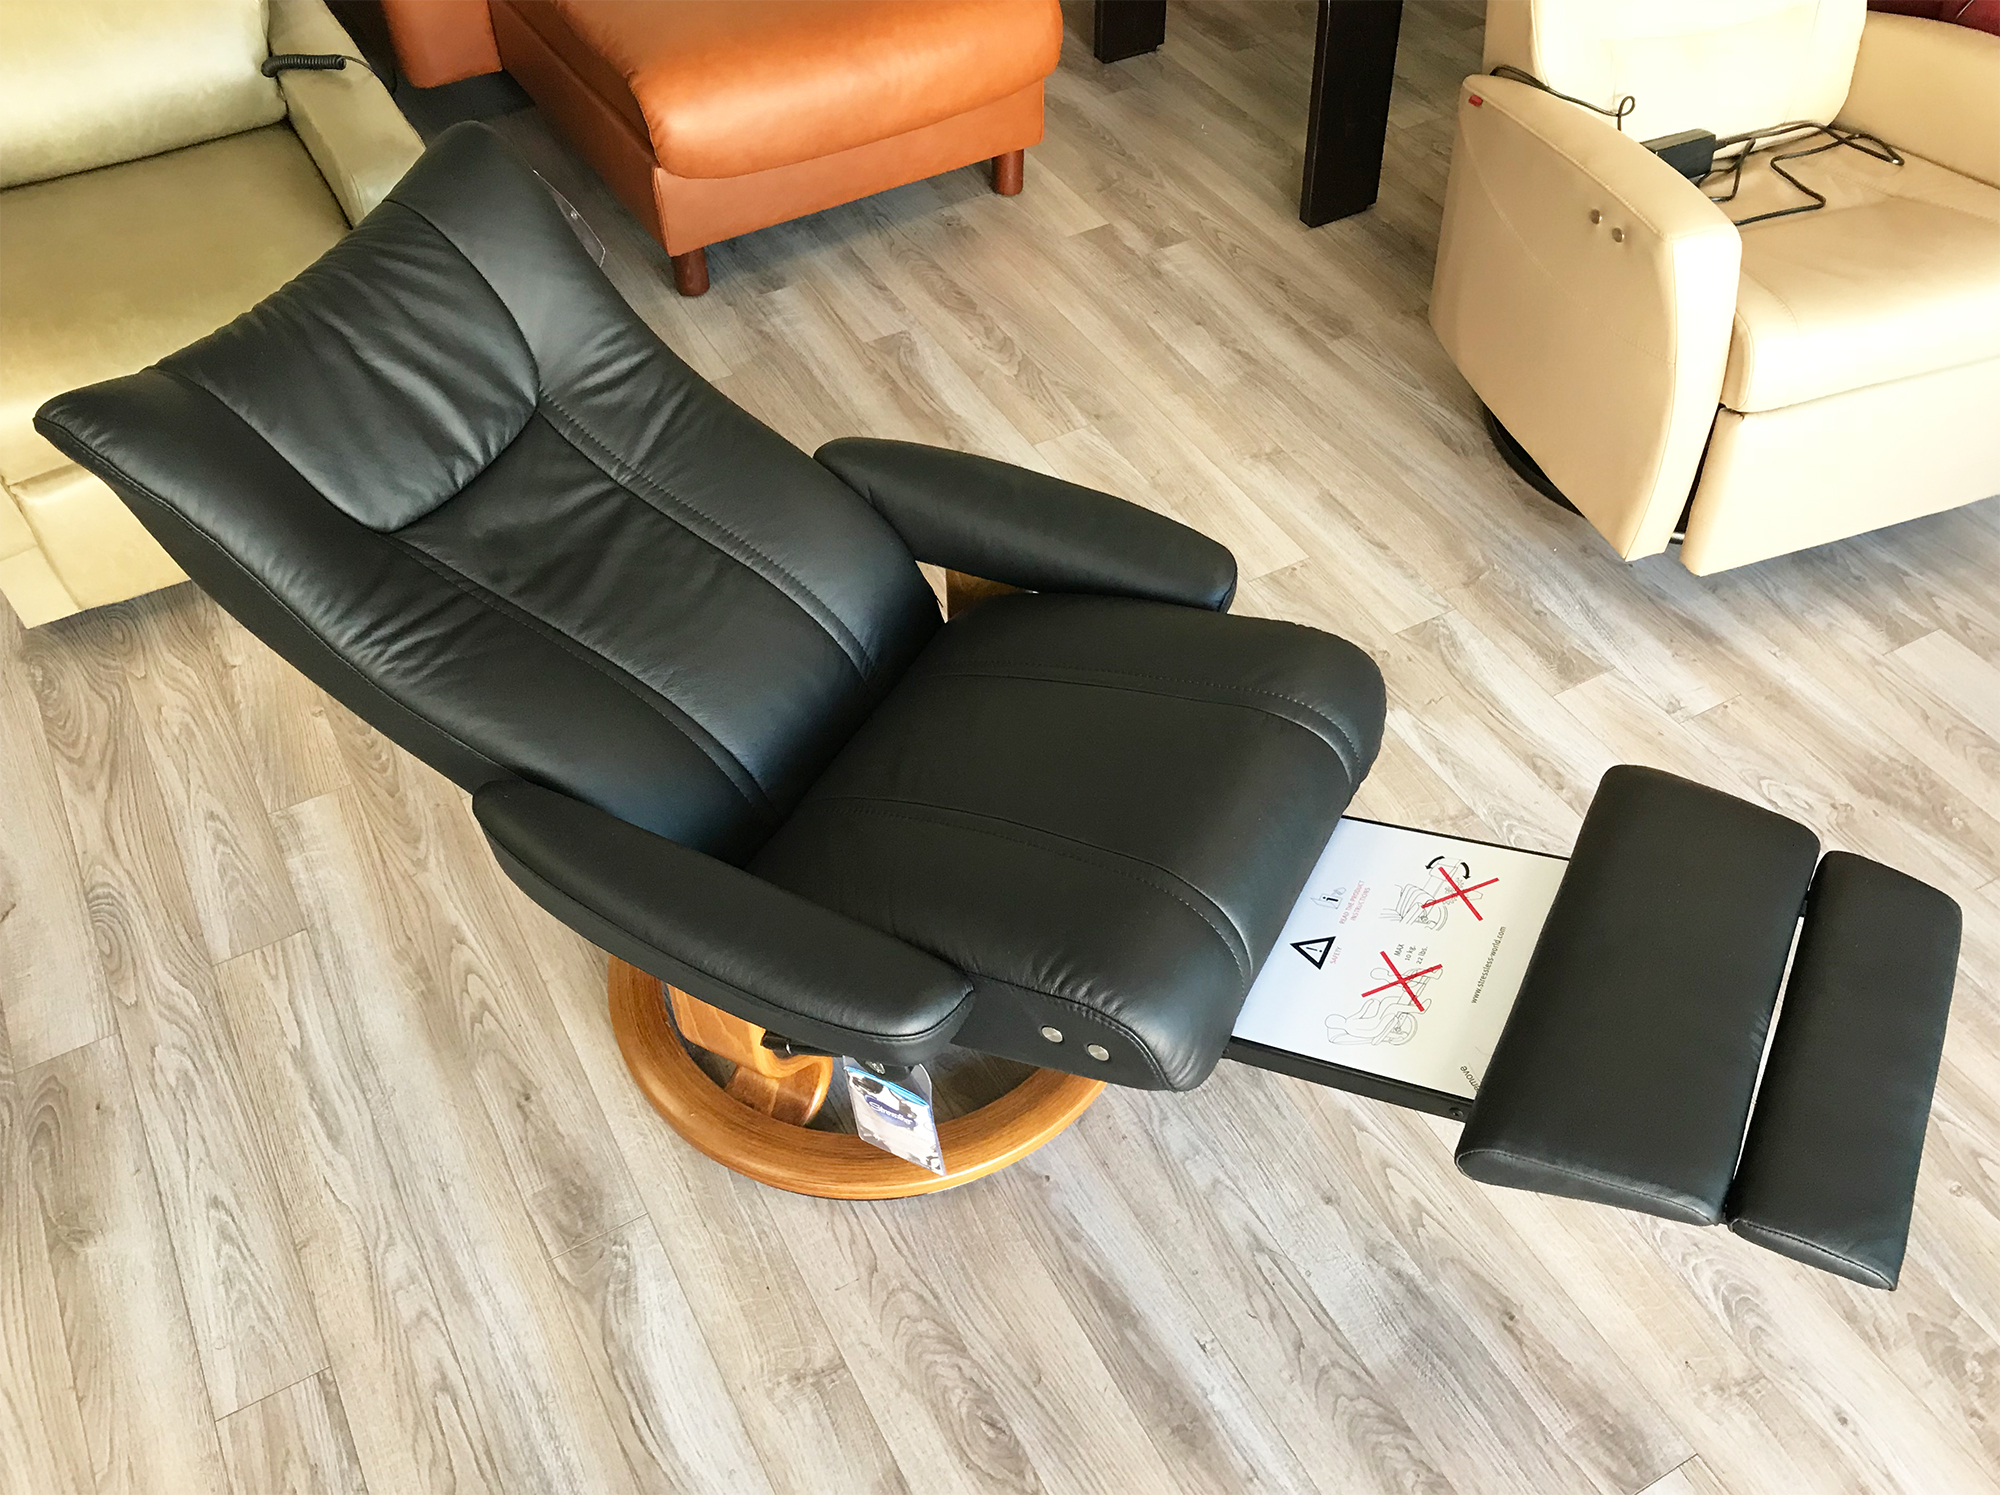 Picture of: Stressless Wing Leg Comfort Paloma Black Leather Recliner Chair With Footrest By Ekornes Stressless Wing Leg Comfort Paloma Black Leather Chairs Recliners